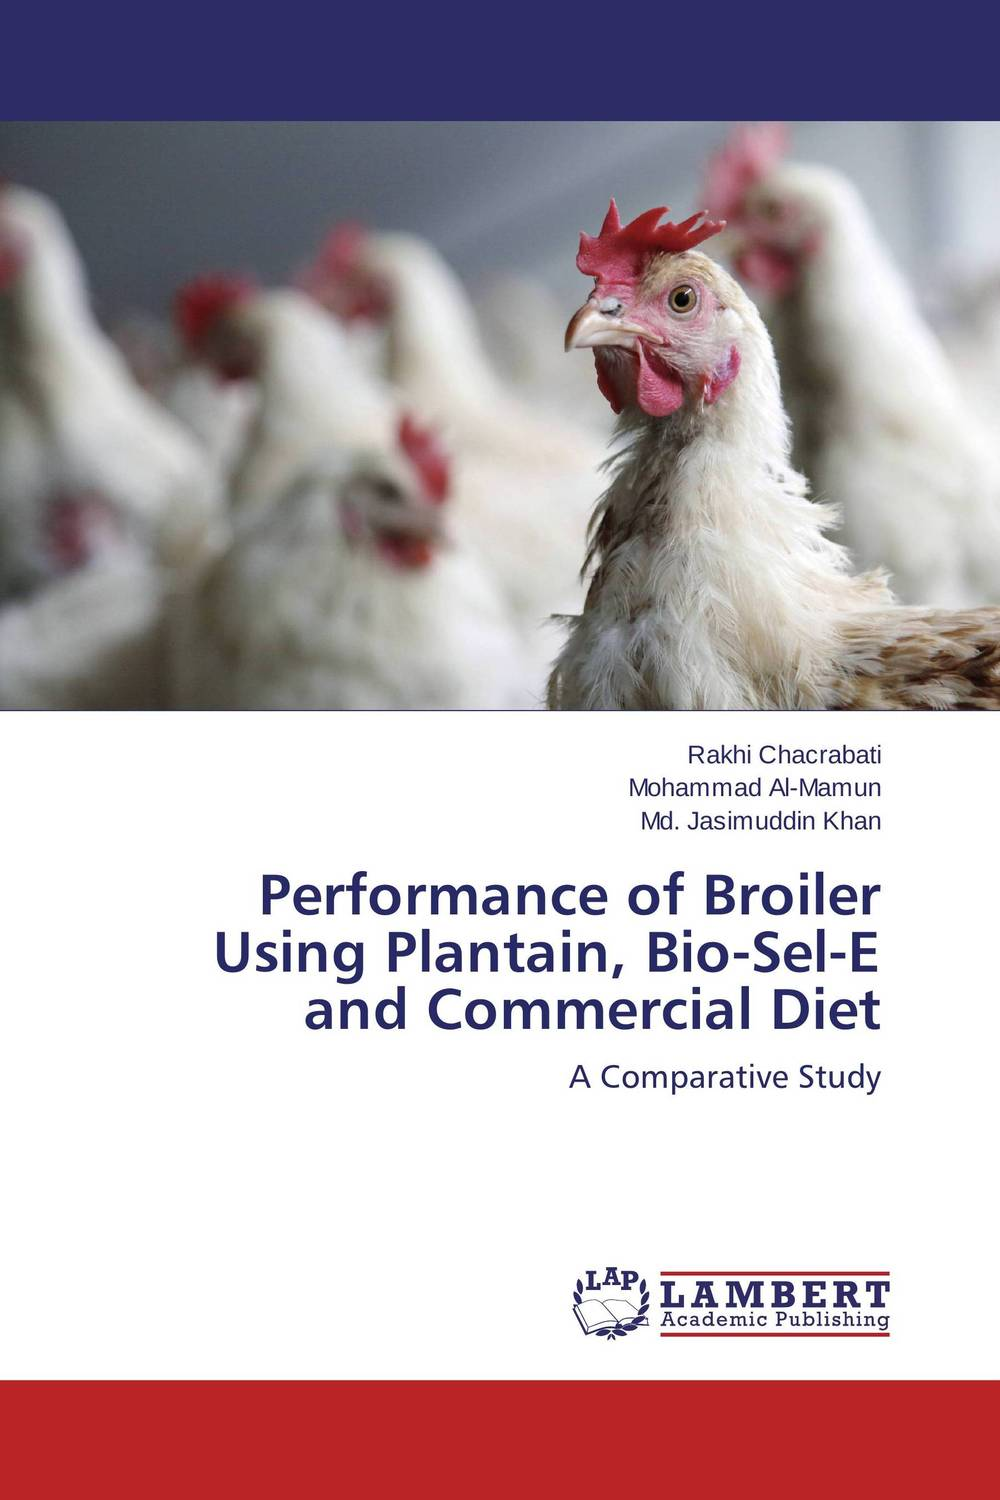 купить Performance of Broiler Using Plantain, Bio-Sel-E and Commercial Diet недорого